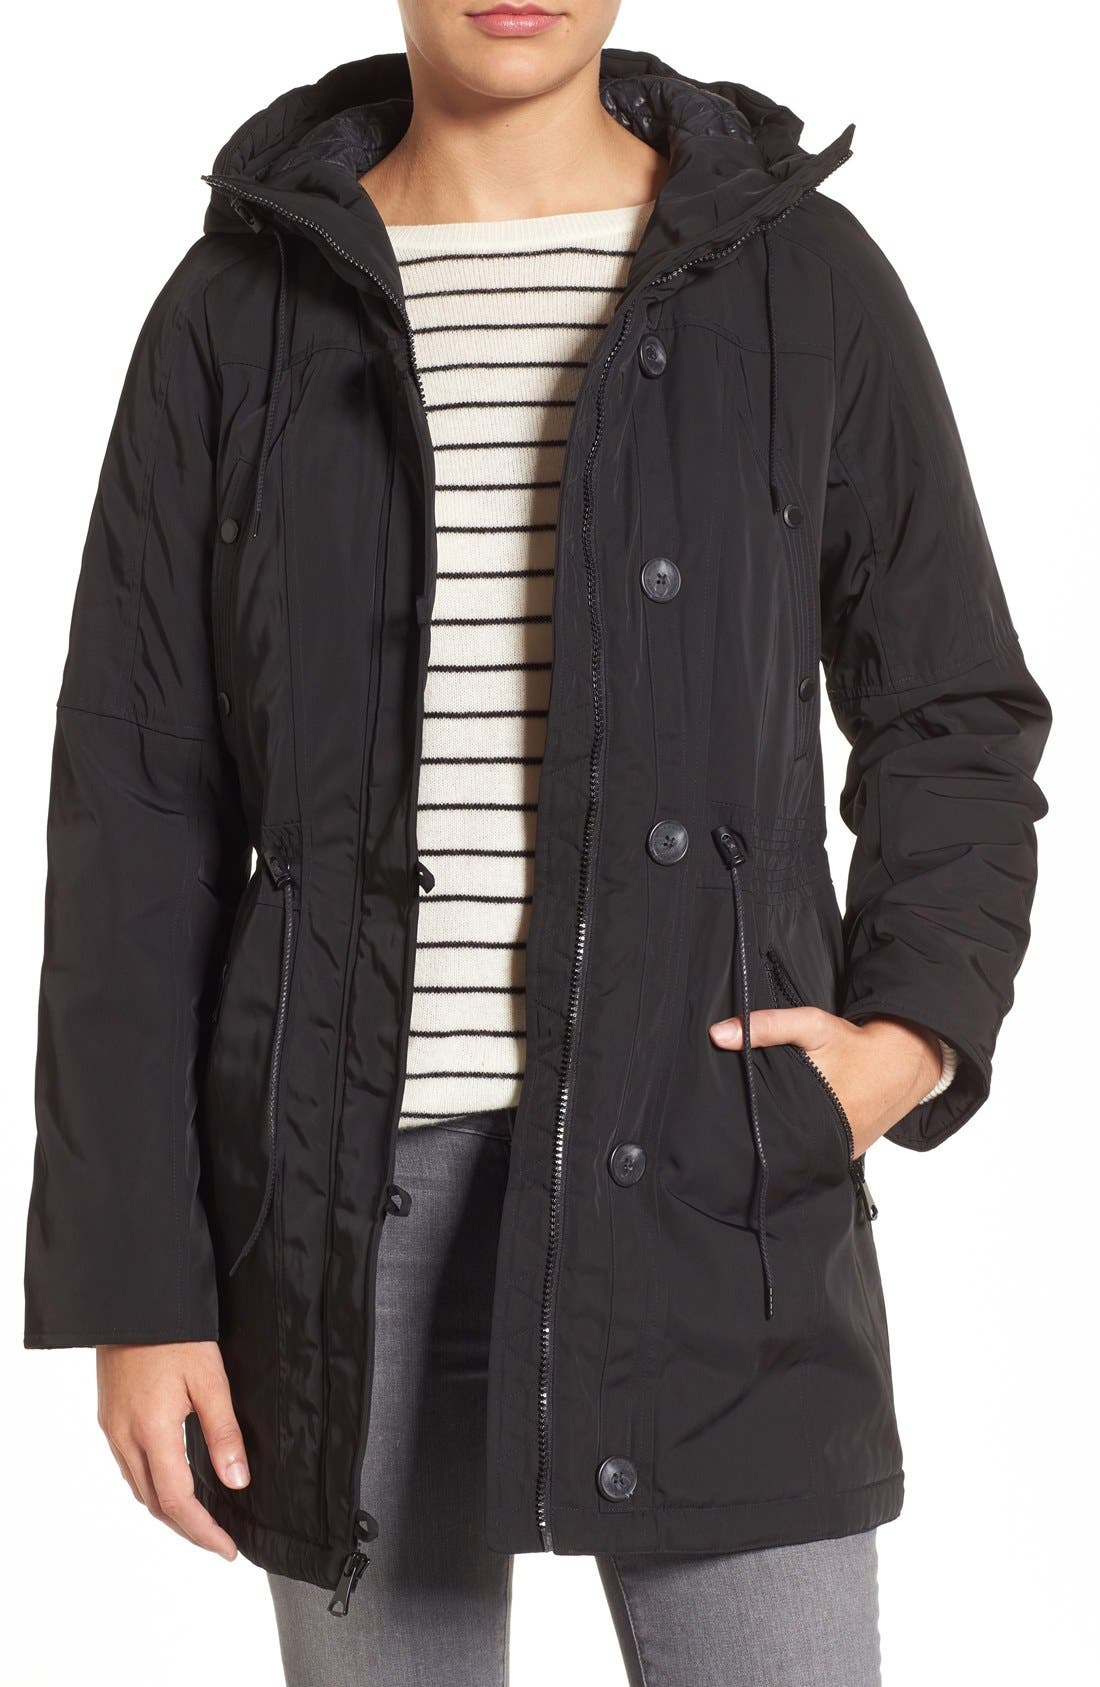 Marc New York by Andrew Marc 'Chrissy' Rain Coat with Removable Hood,                             Main thumbnail 1, color,                             001